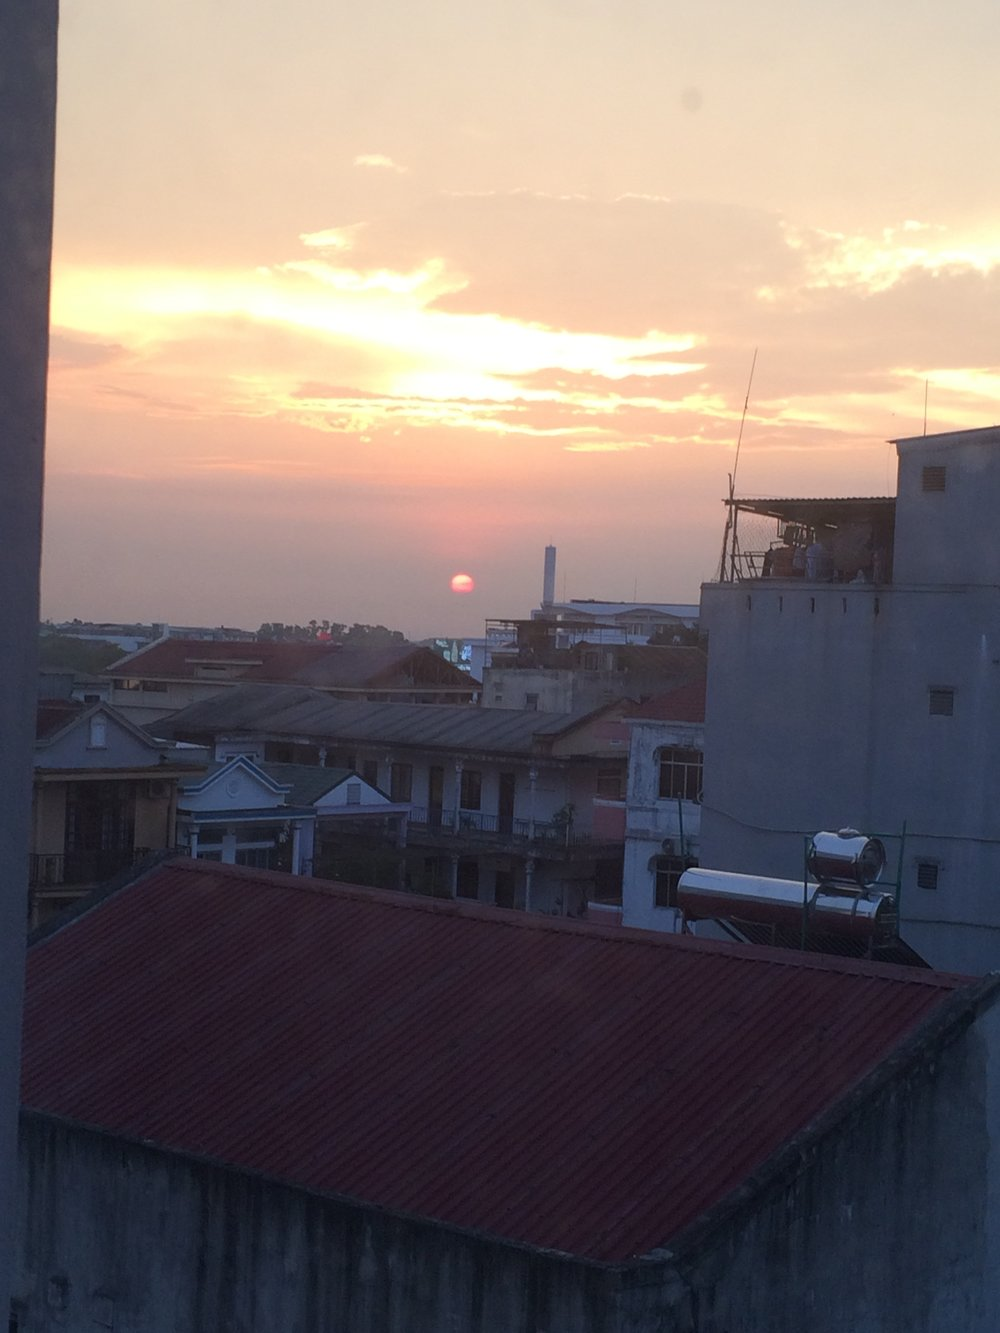 The Hue sunset from our hotel window